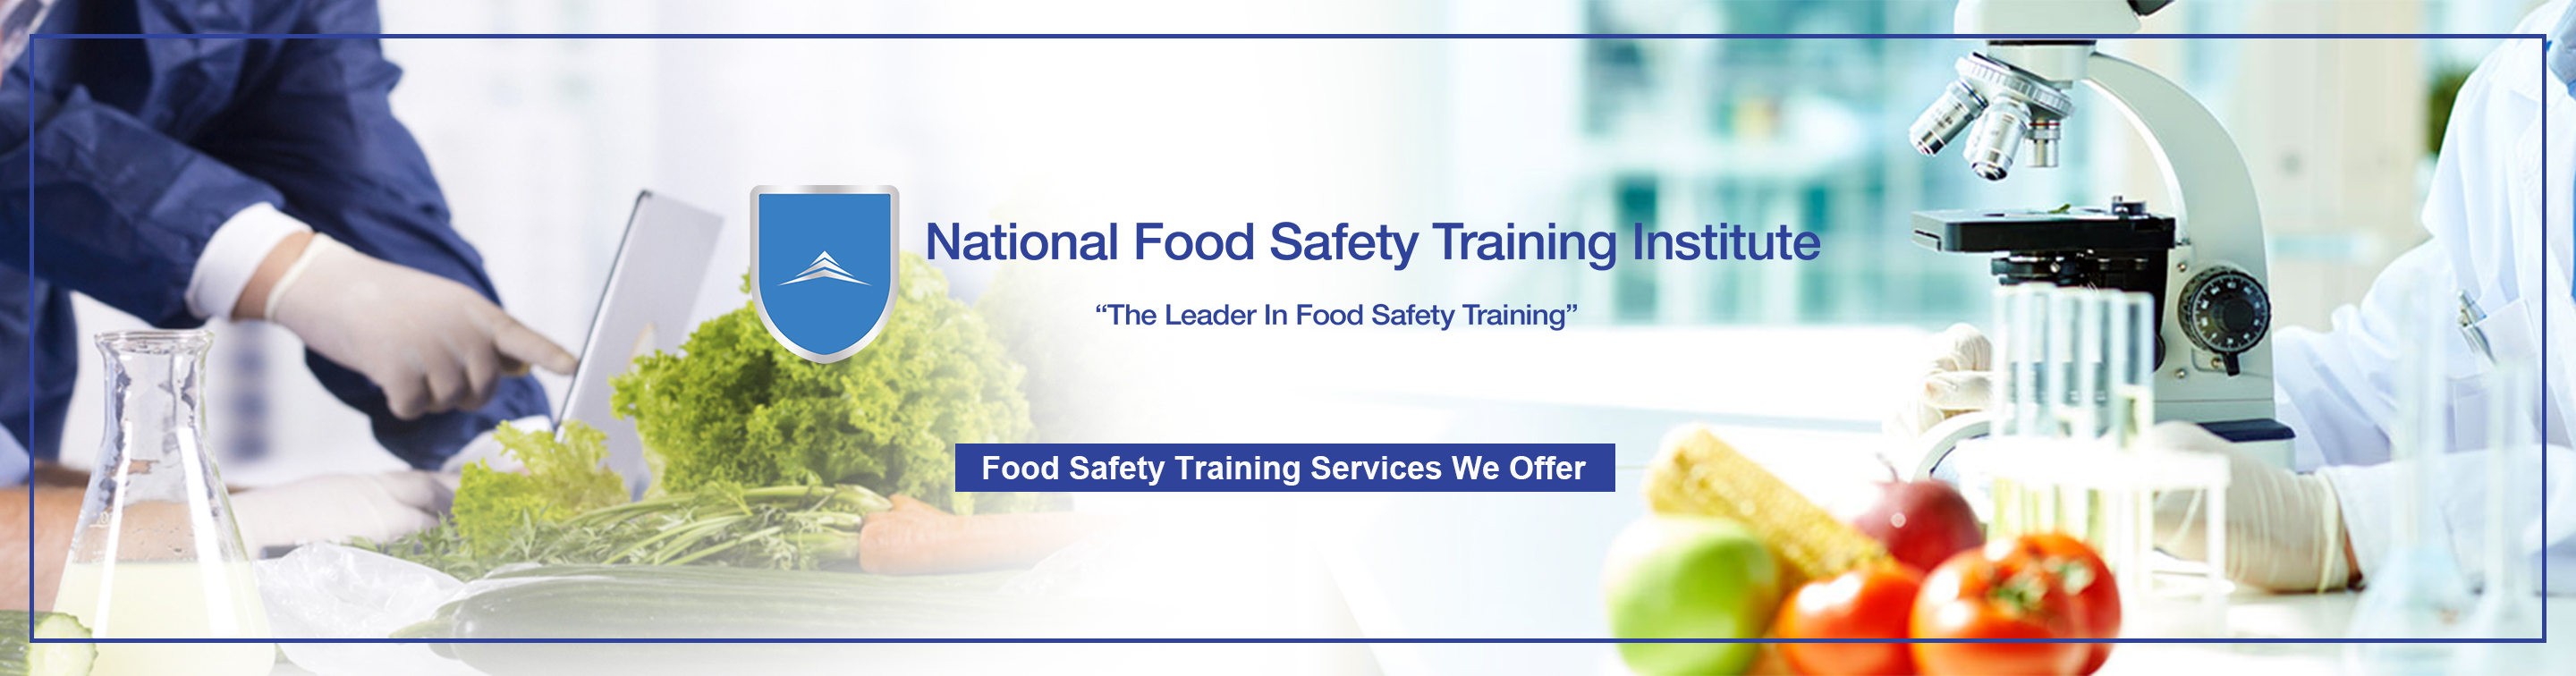 National Food Safety Training Institute reviews | 825 Nicollet Mall - Minneapolis MN